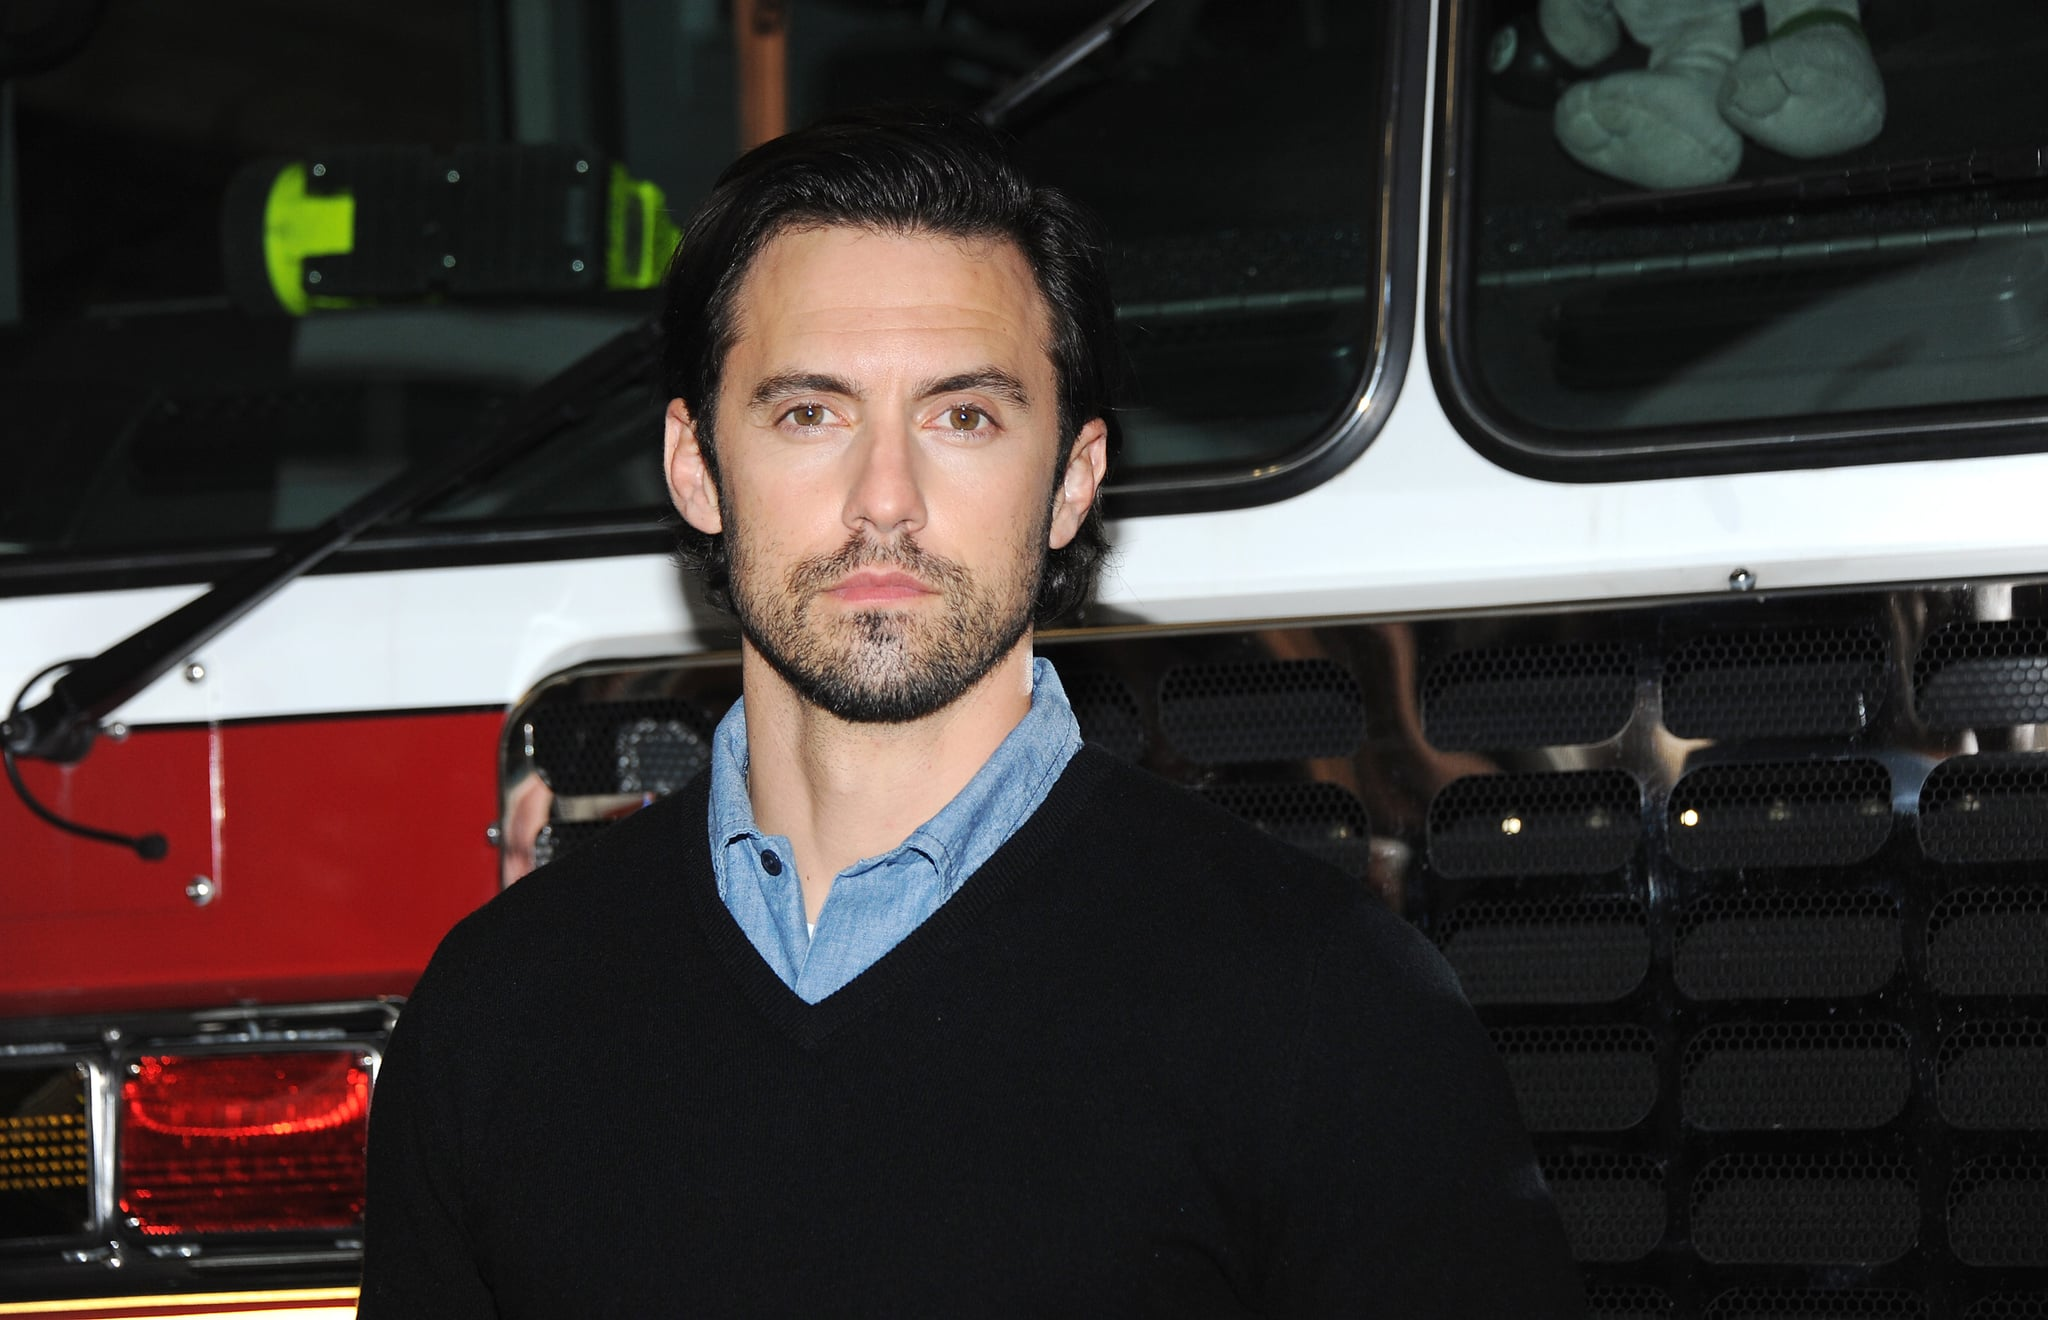 NEW YORK, NY - MARCH 08:  Actor Milo Ventimiglia teams up with Duracell and the FDNY for Fire Safety at FDNY165 51st Street on March 8, 2018 in New York City.  (Photo by Desiree Navarro/WireImage)